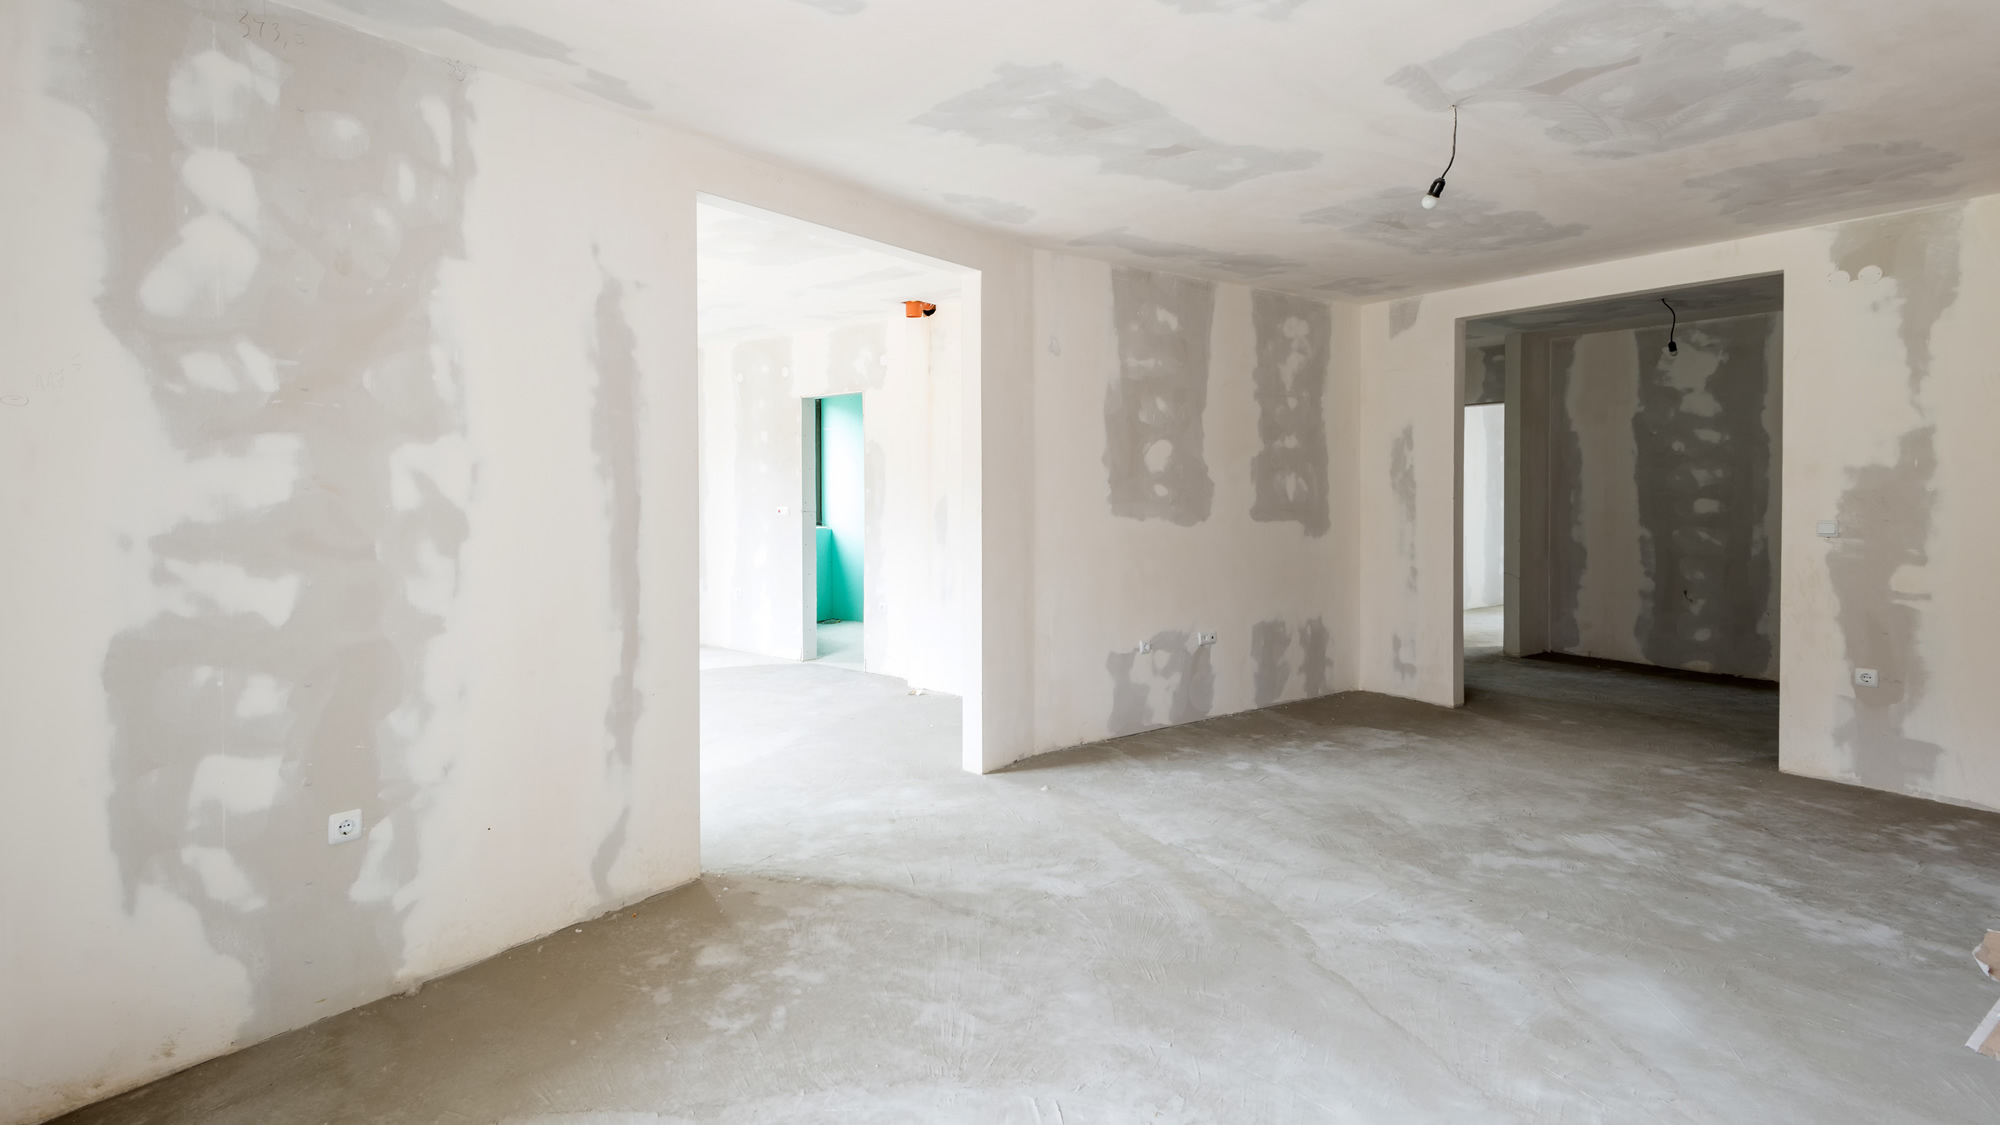 Home Mold Damage Restoration by HS3 in Fountain Hills, AZ